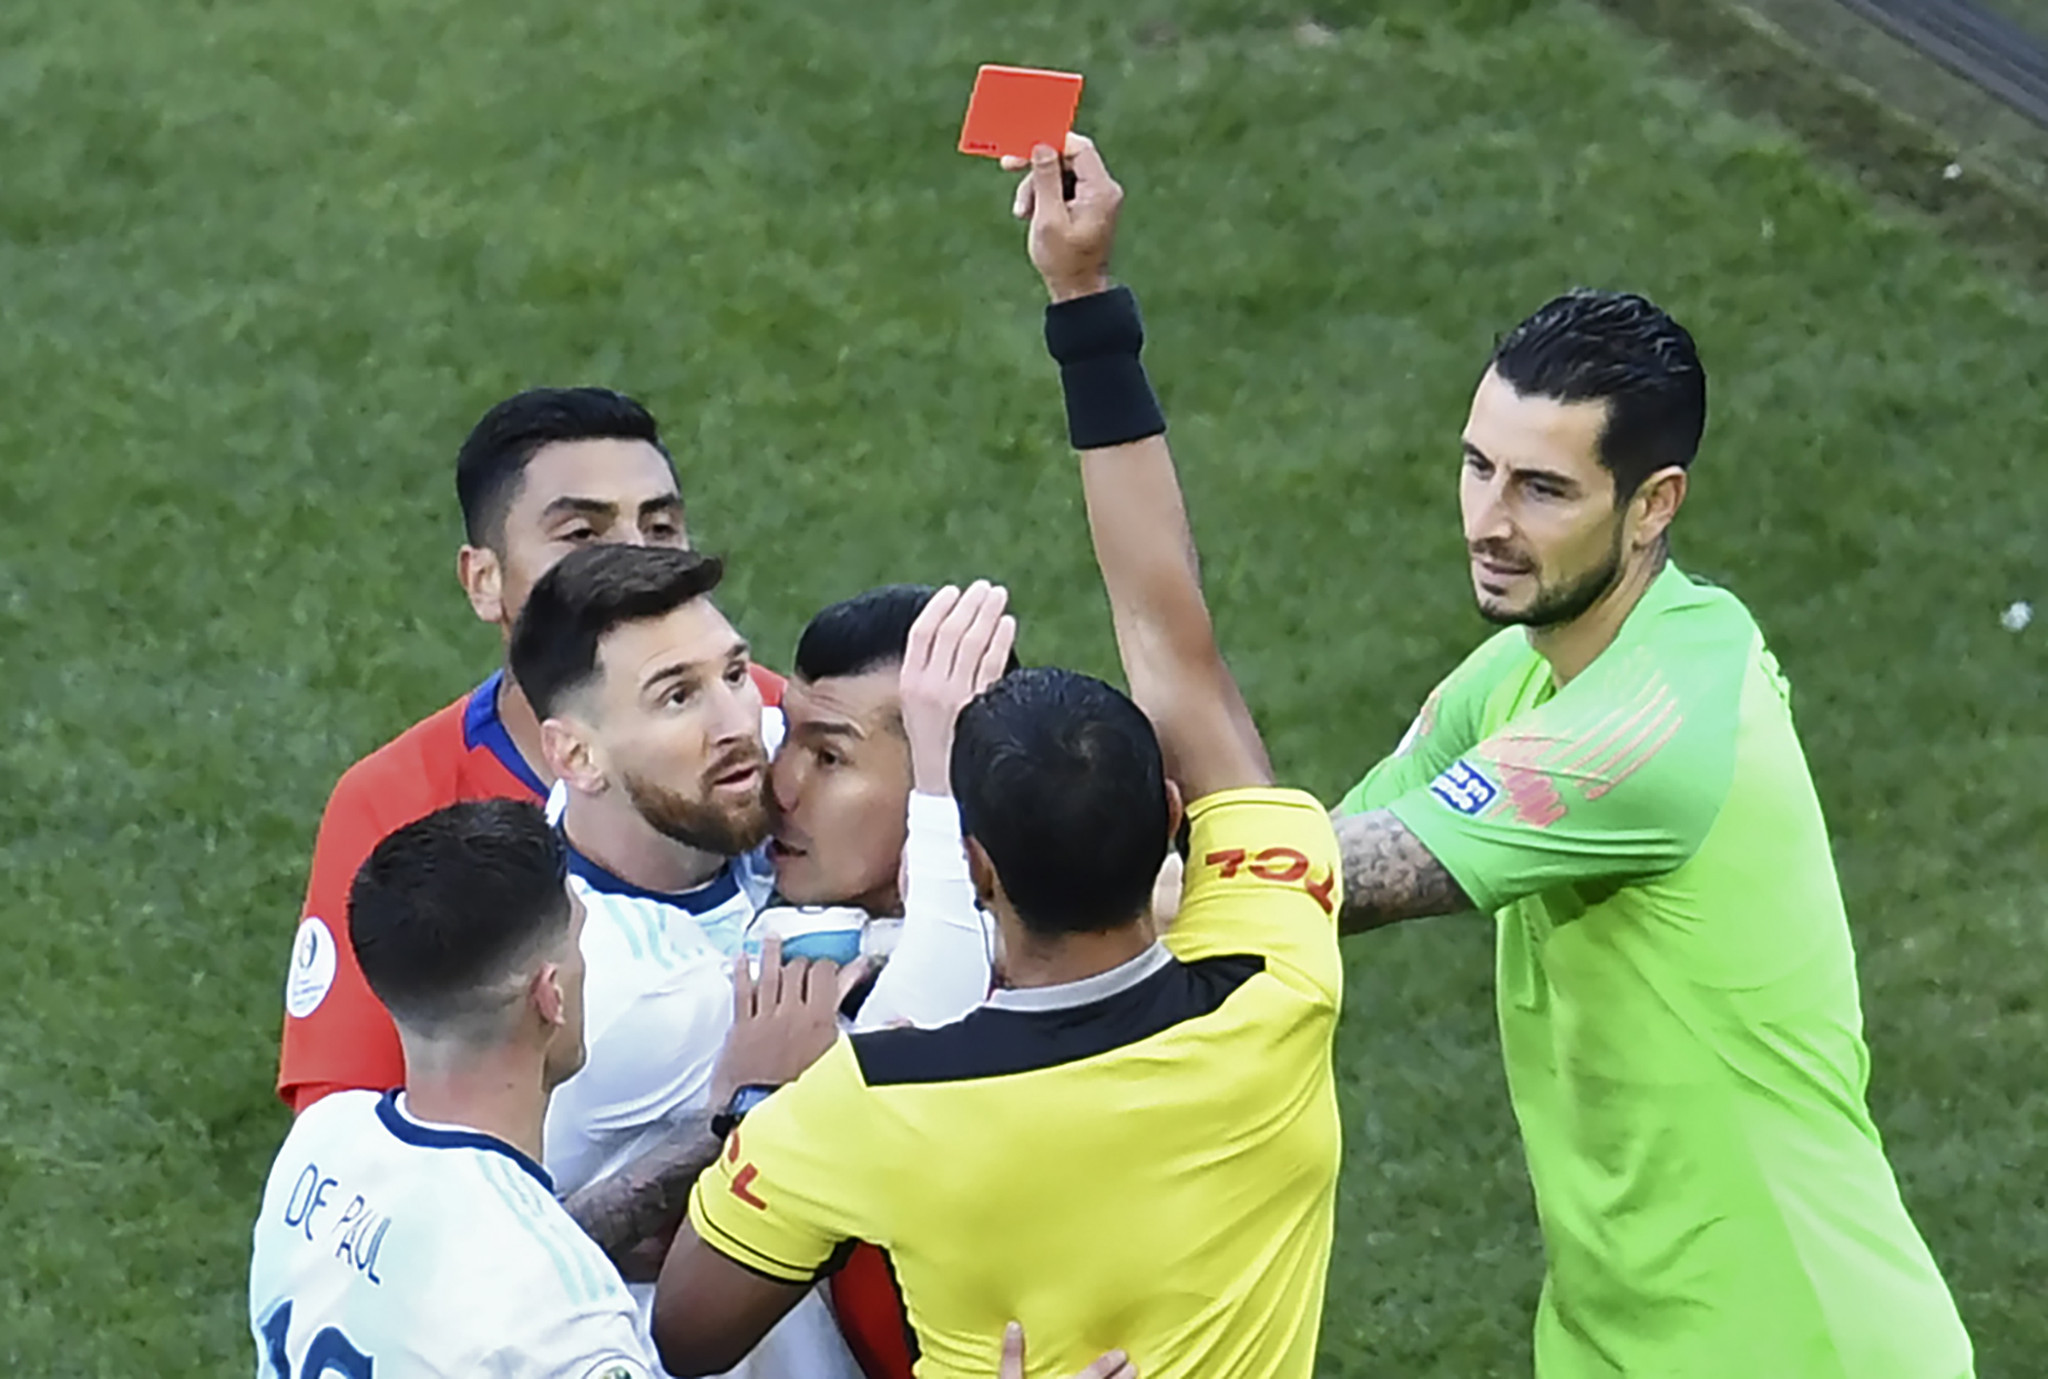 Messi accuses Copa América officials of corruption as red card overshadows Argentina's bronze